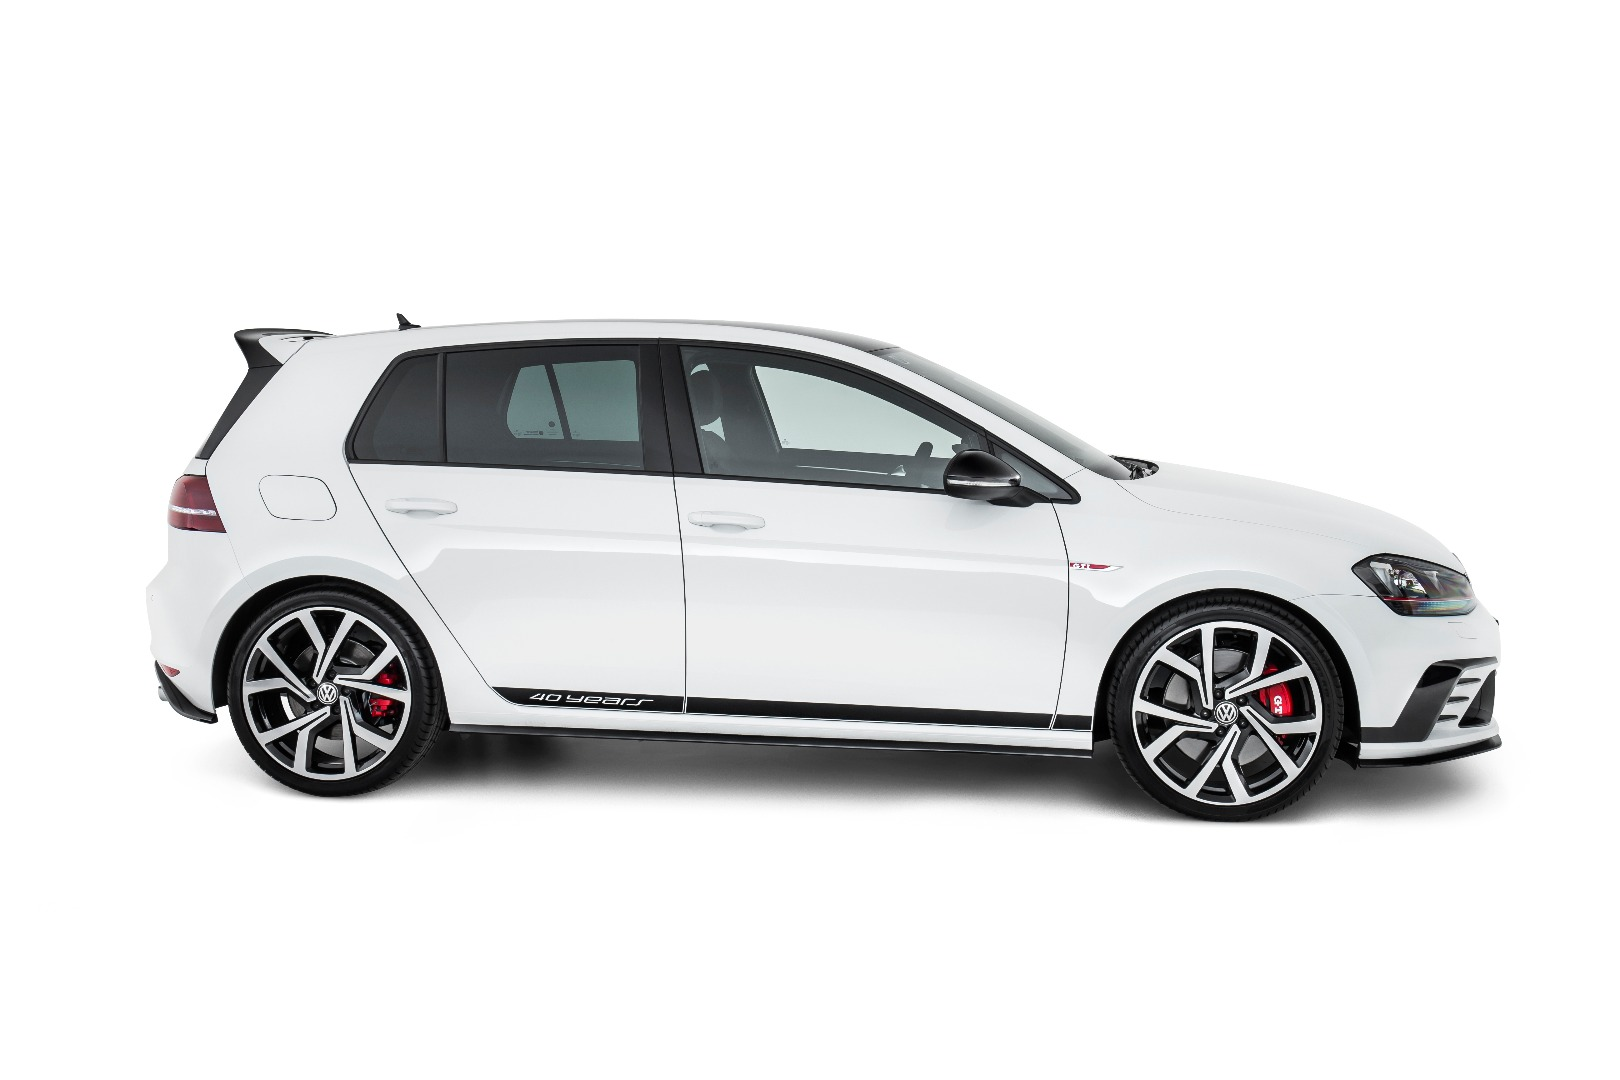 News Volkswagen S Gti 40 Years Edition Arrives In Oz